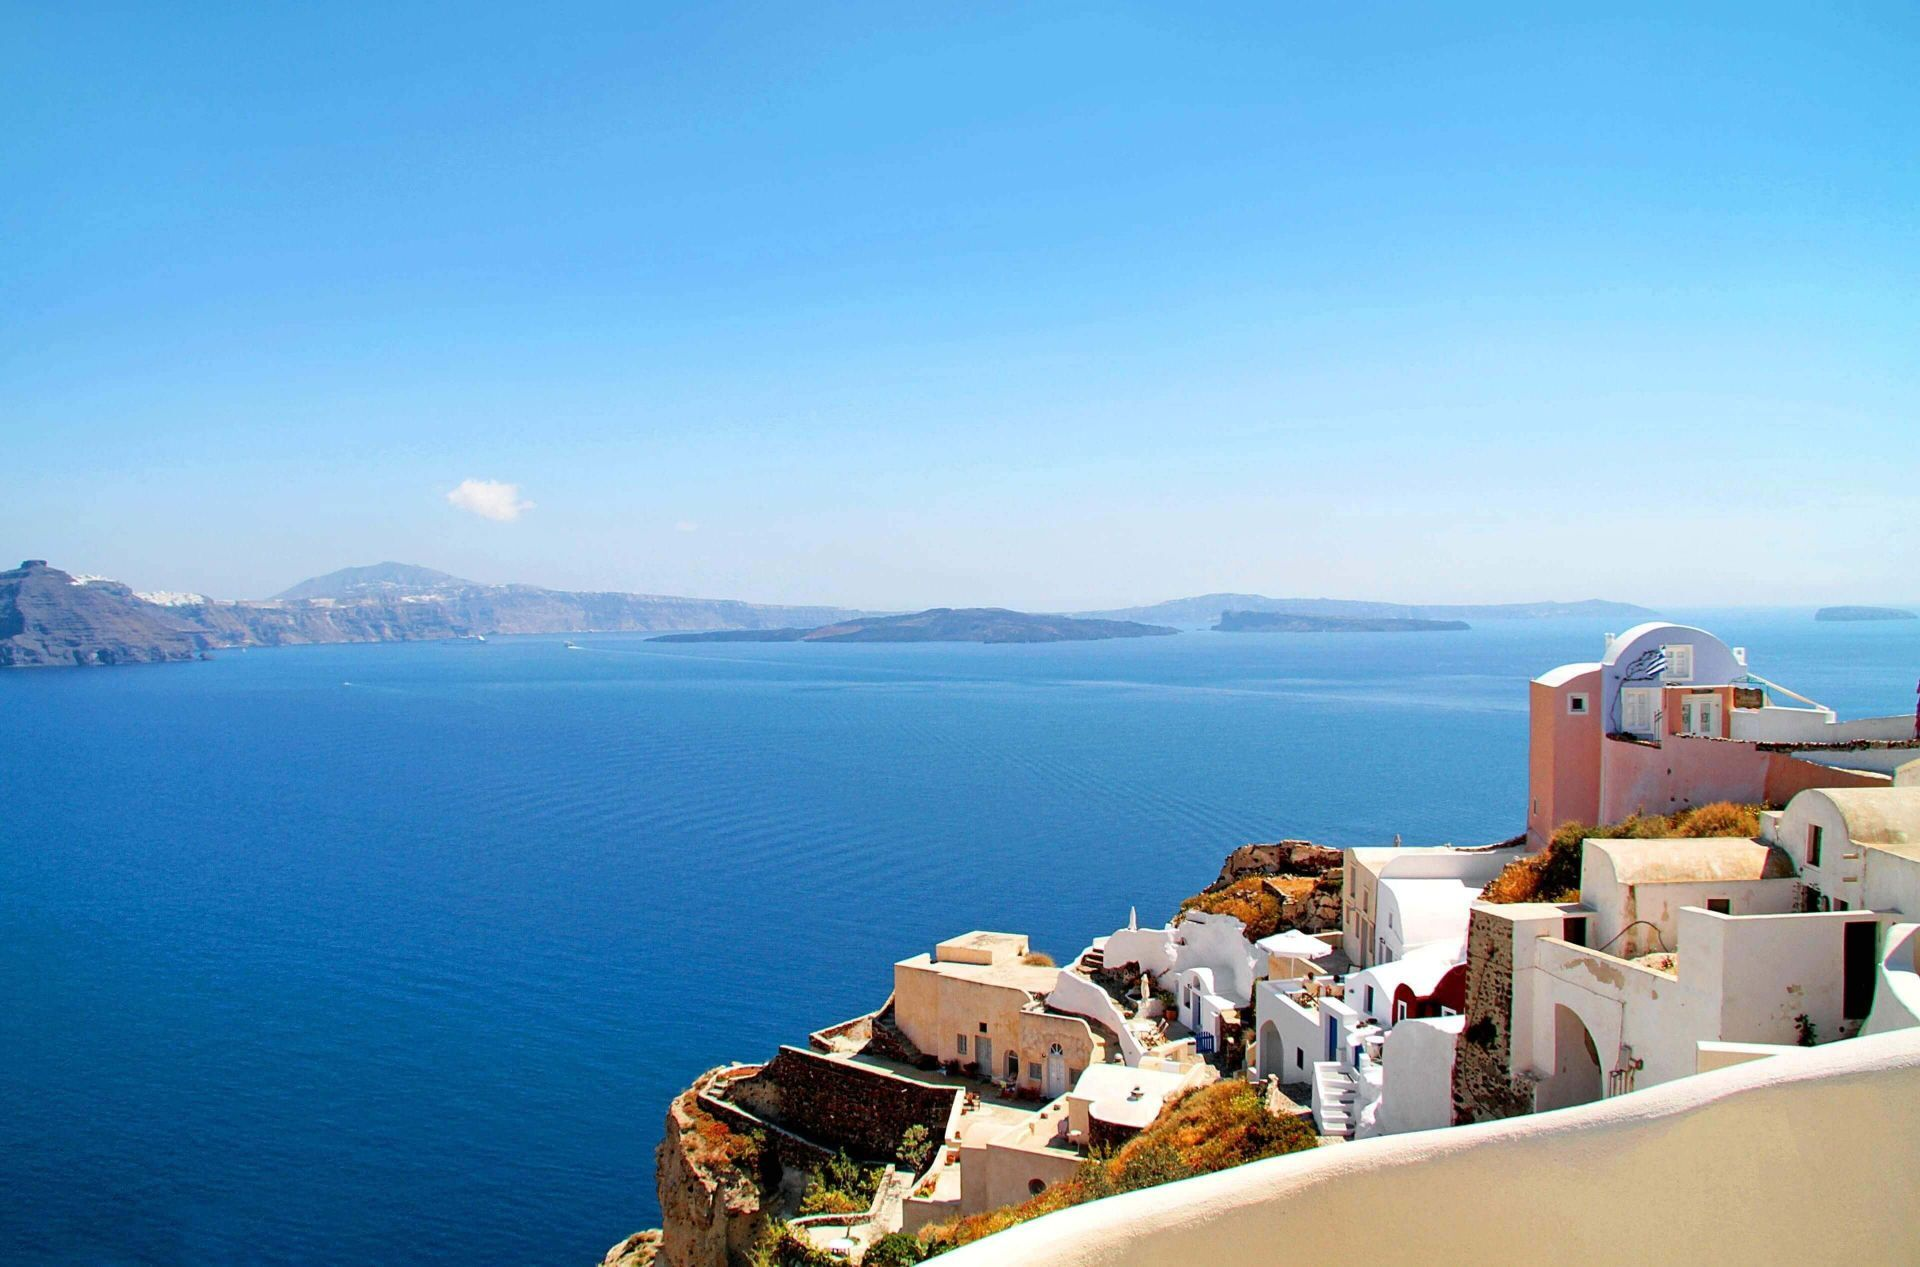 Greek Islands Travel Guide: Oia in Santorini